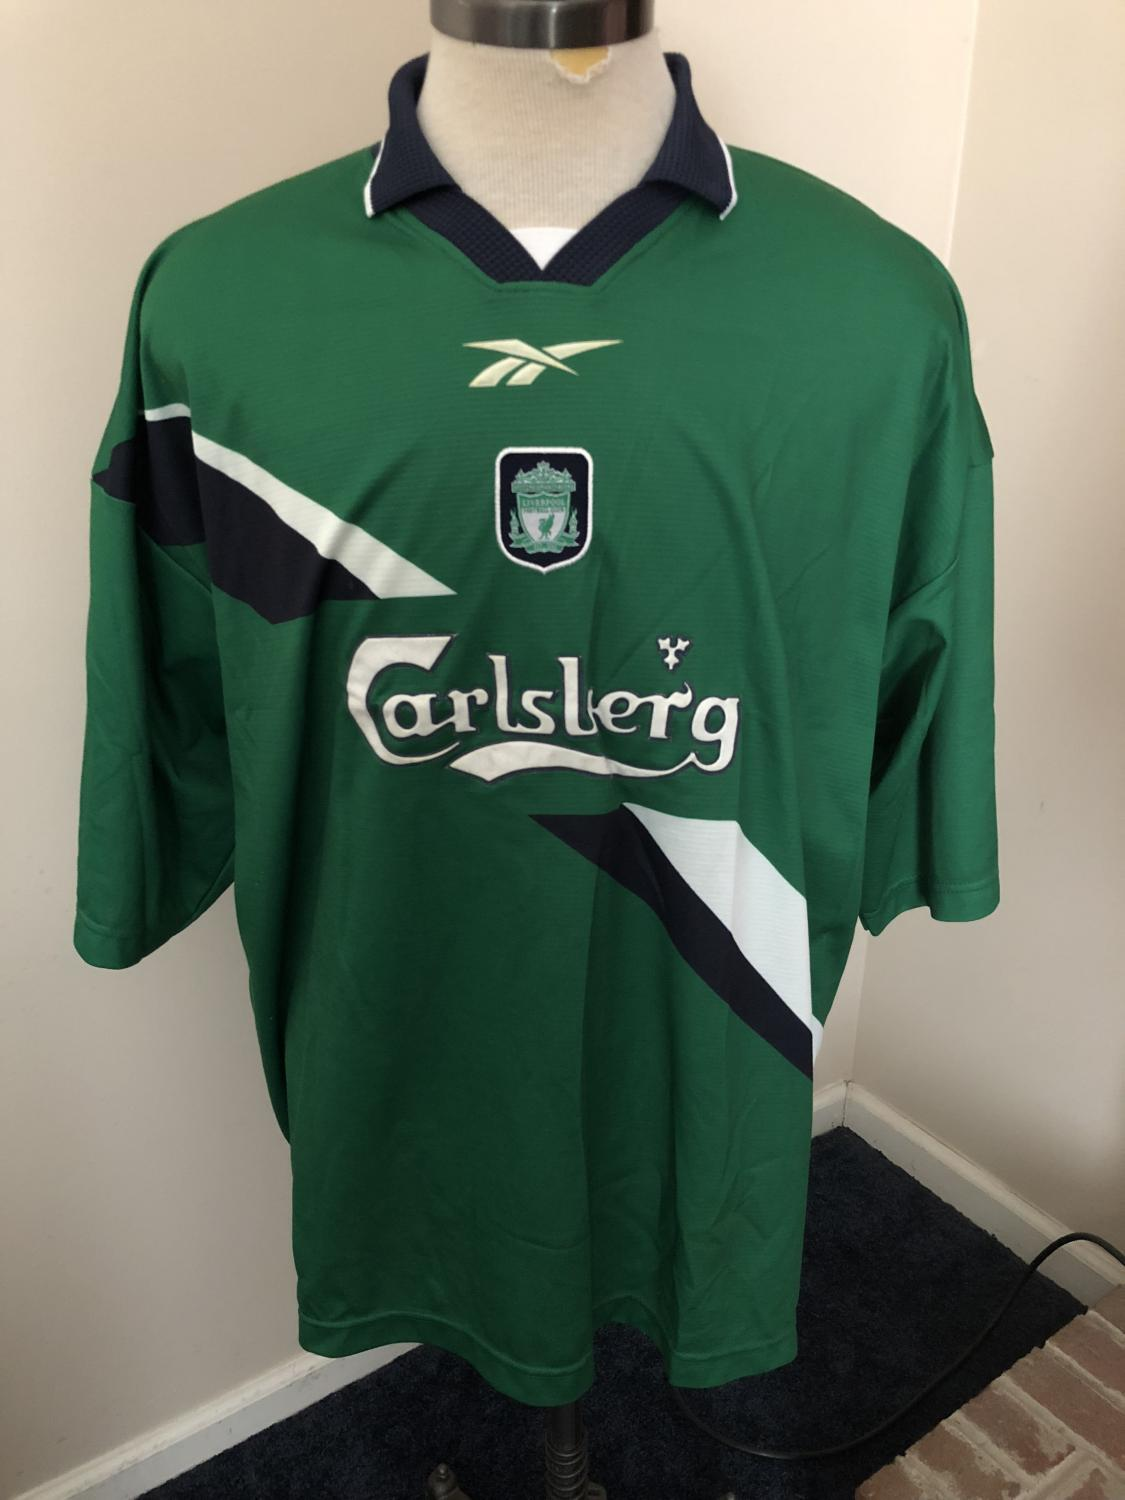 brand new ae74a 8f2bb Liverpool Away football shirt 1999 - 2000. Sponsored by ...